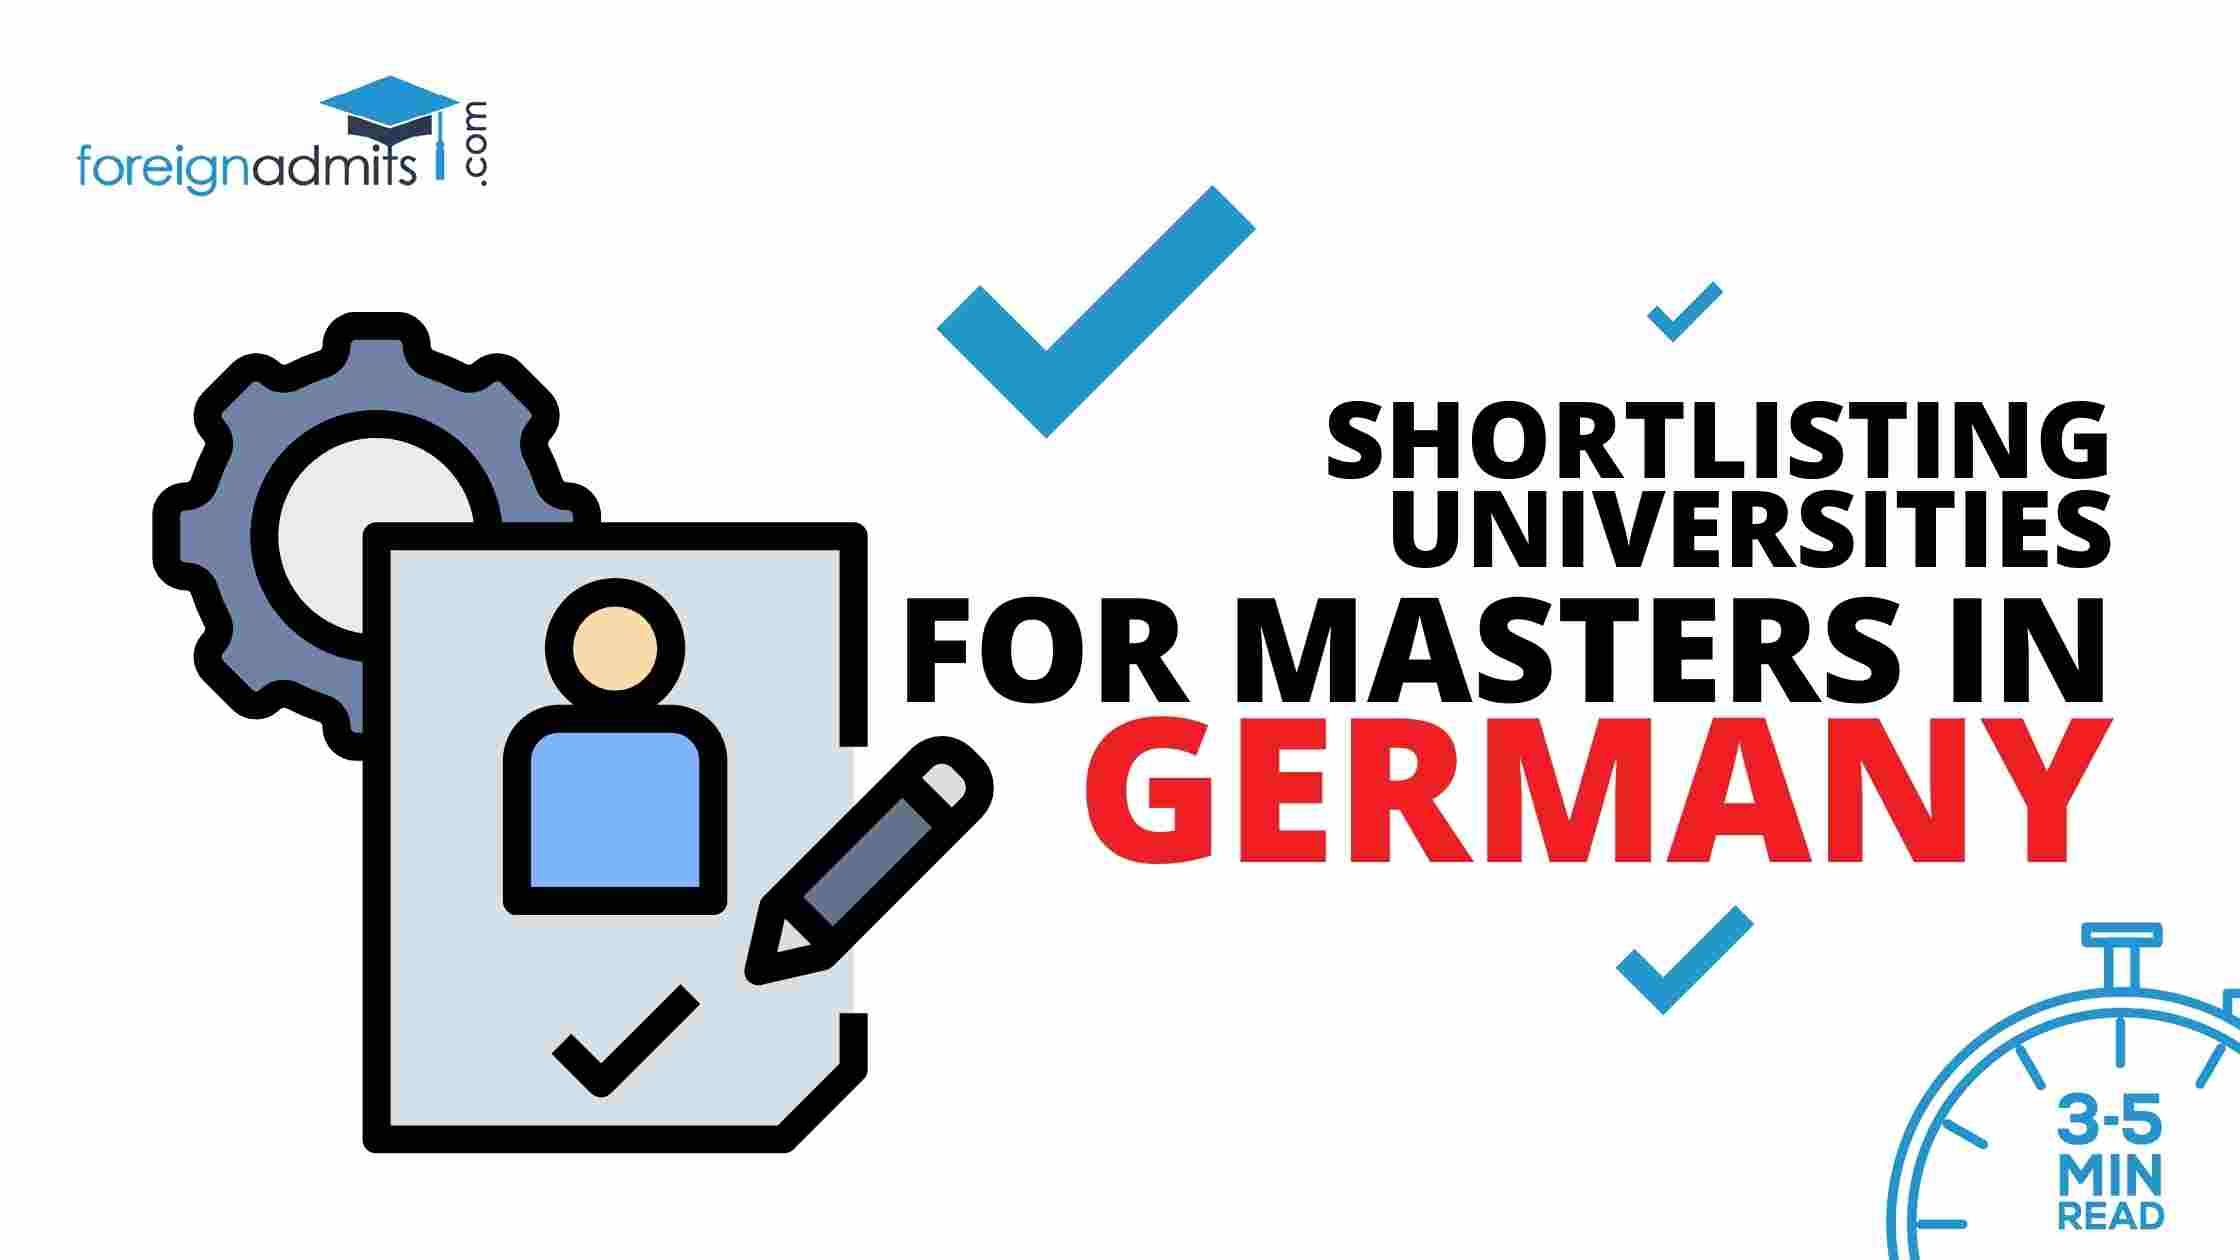 Shortlisting Universities for Masters in Germany